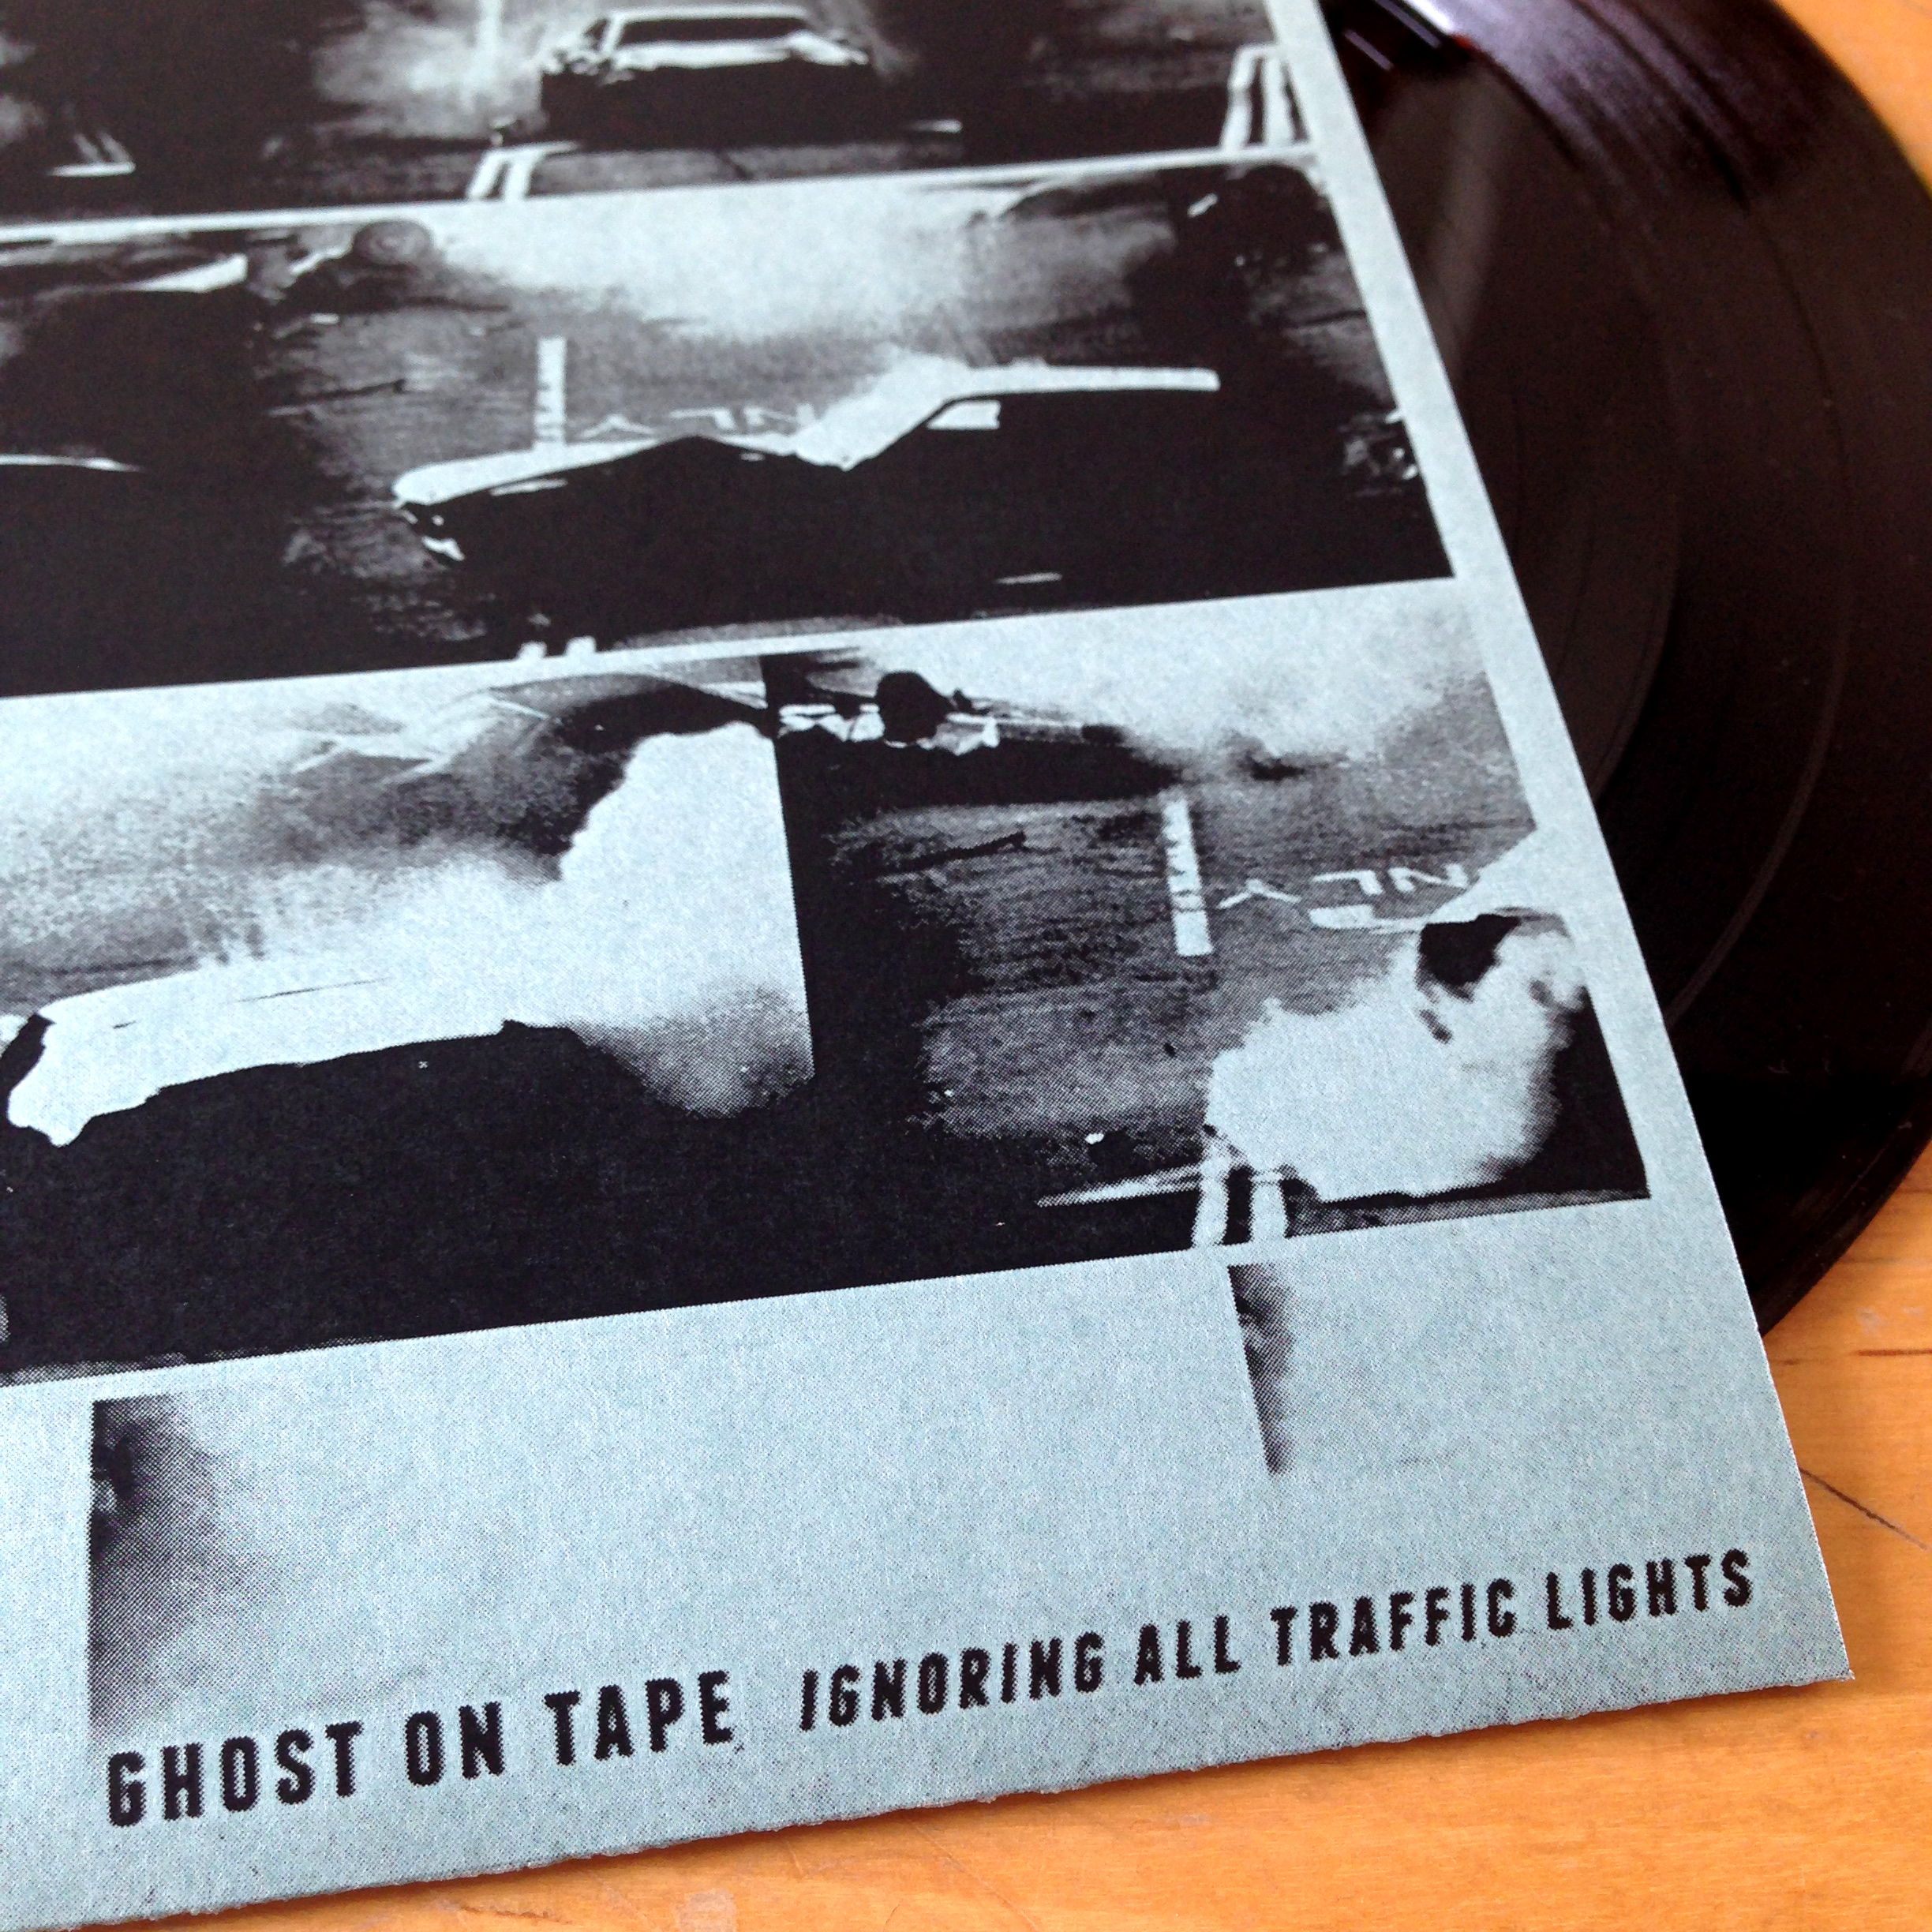 Ghost On Tape - Ignoring all traffic lights